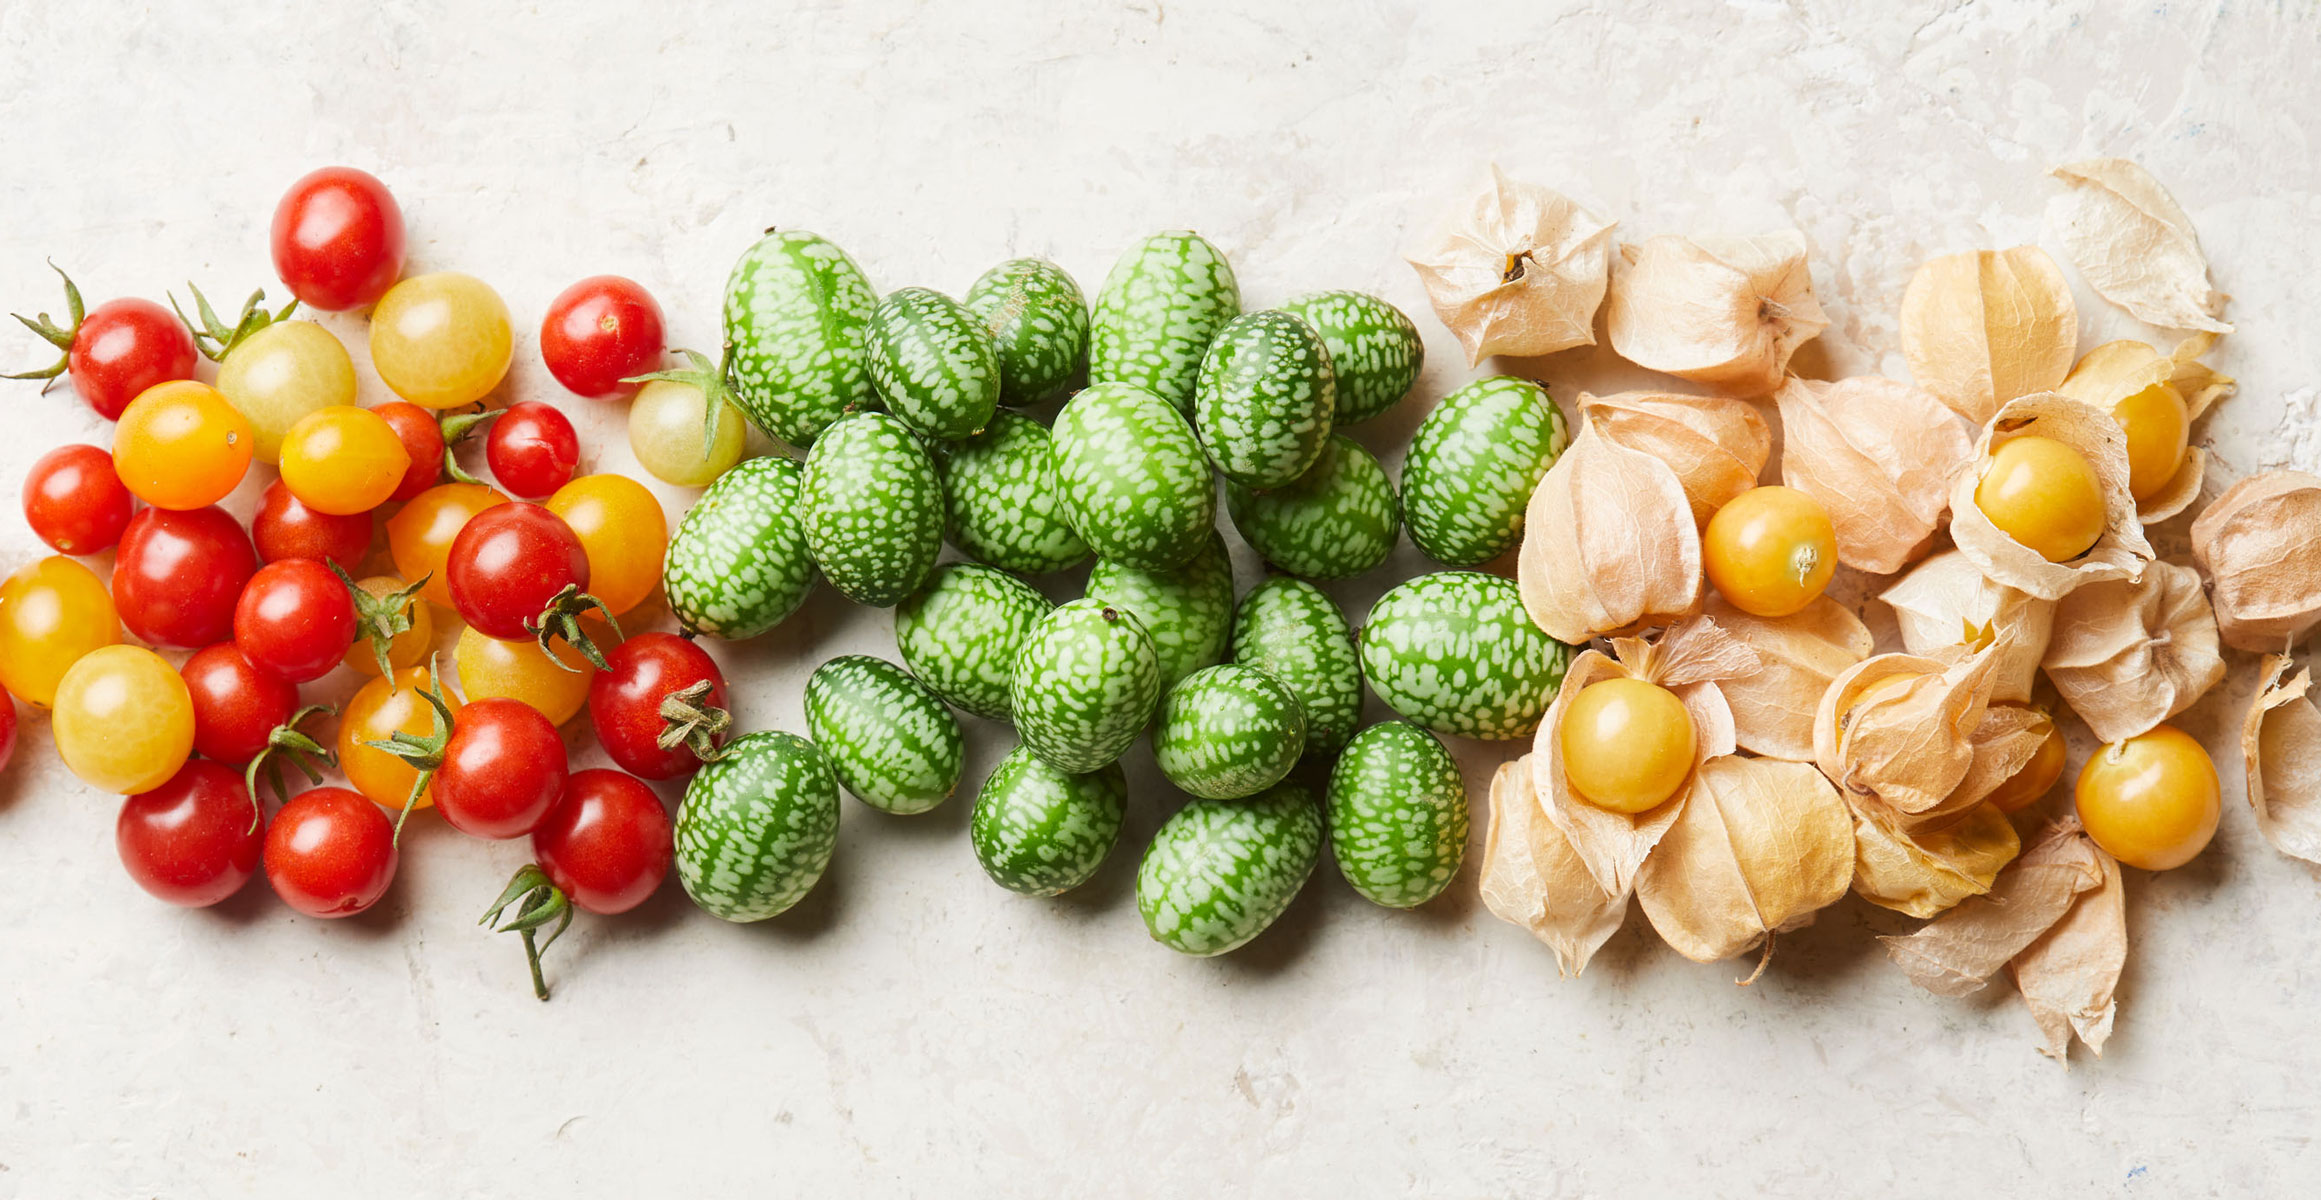 Tomatoes, cucamelons and ground cherries